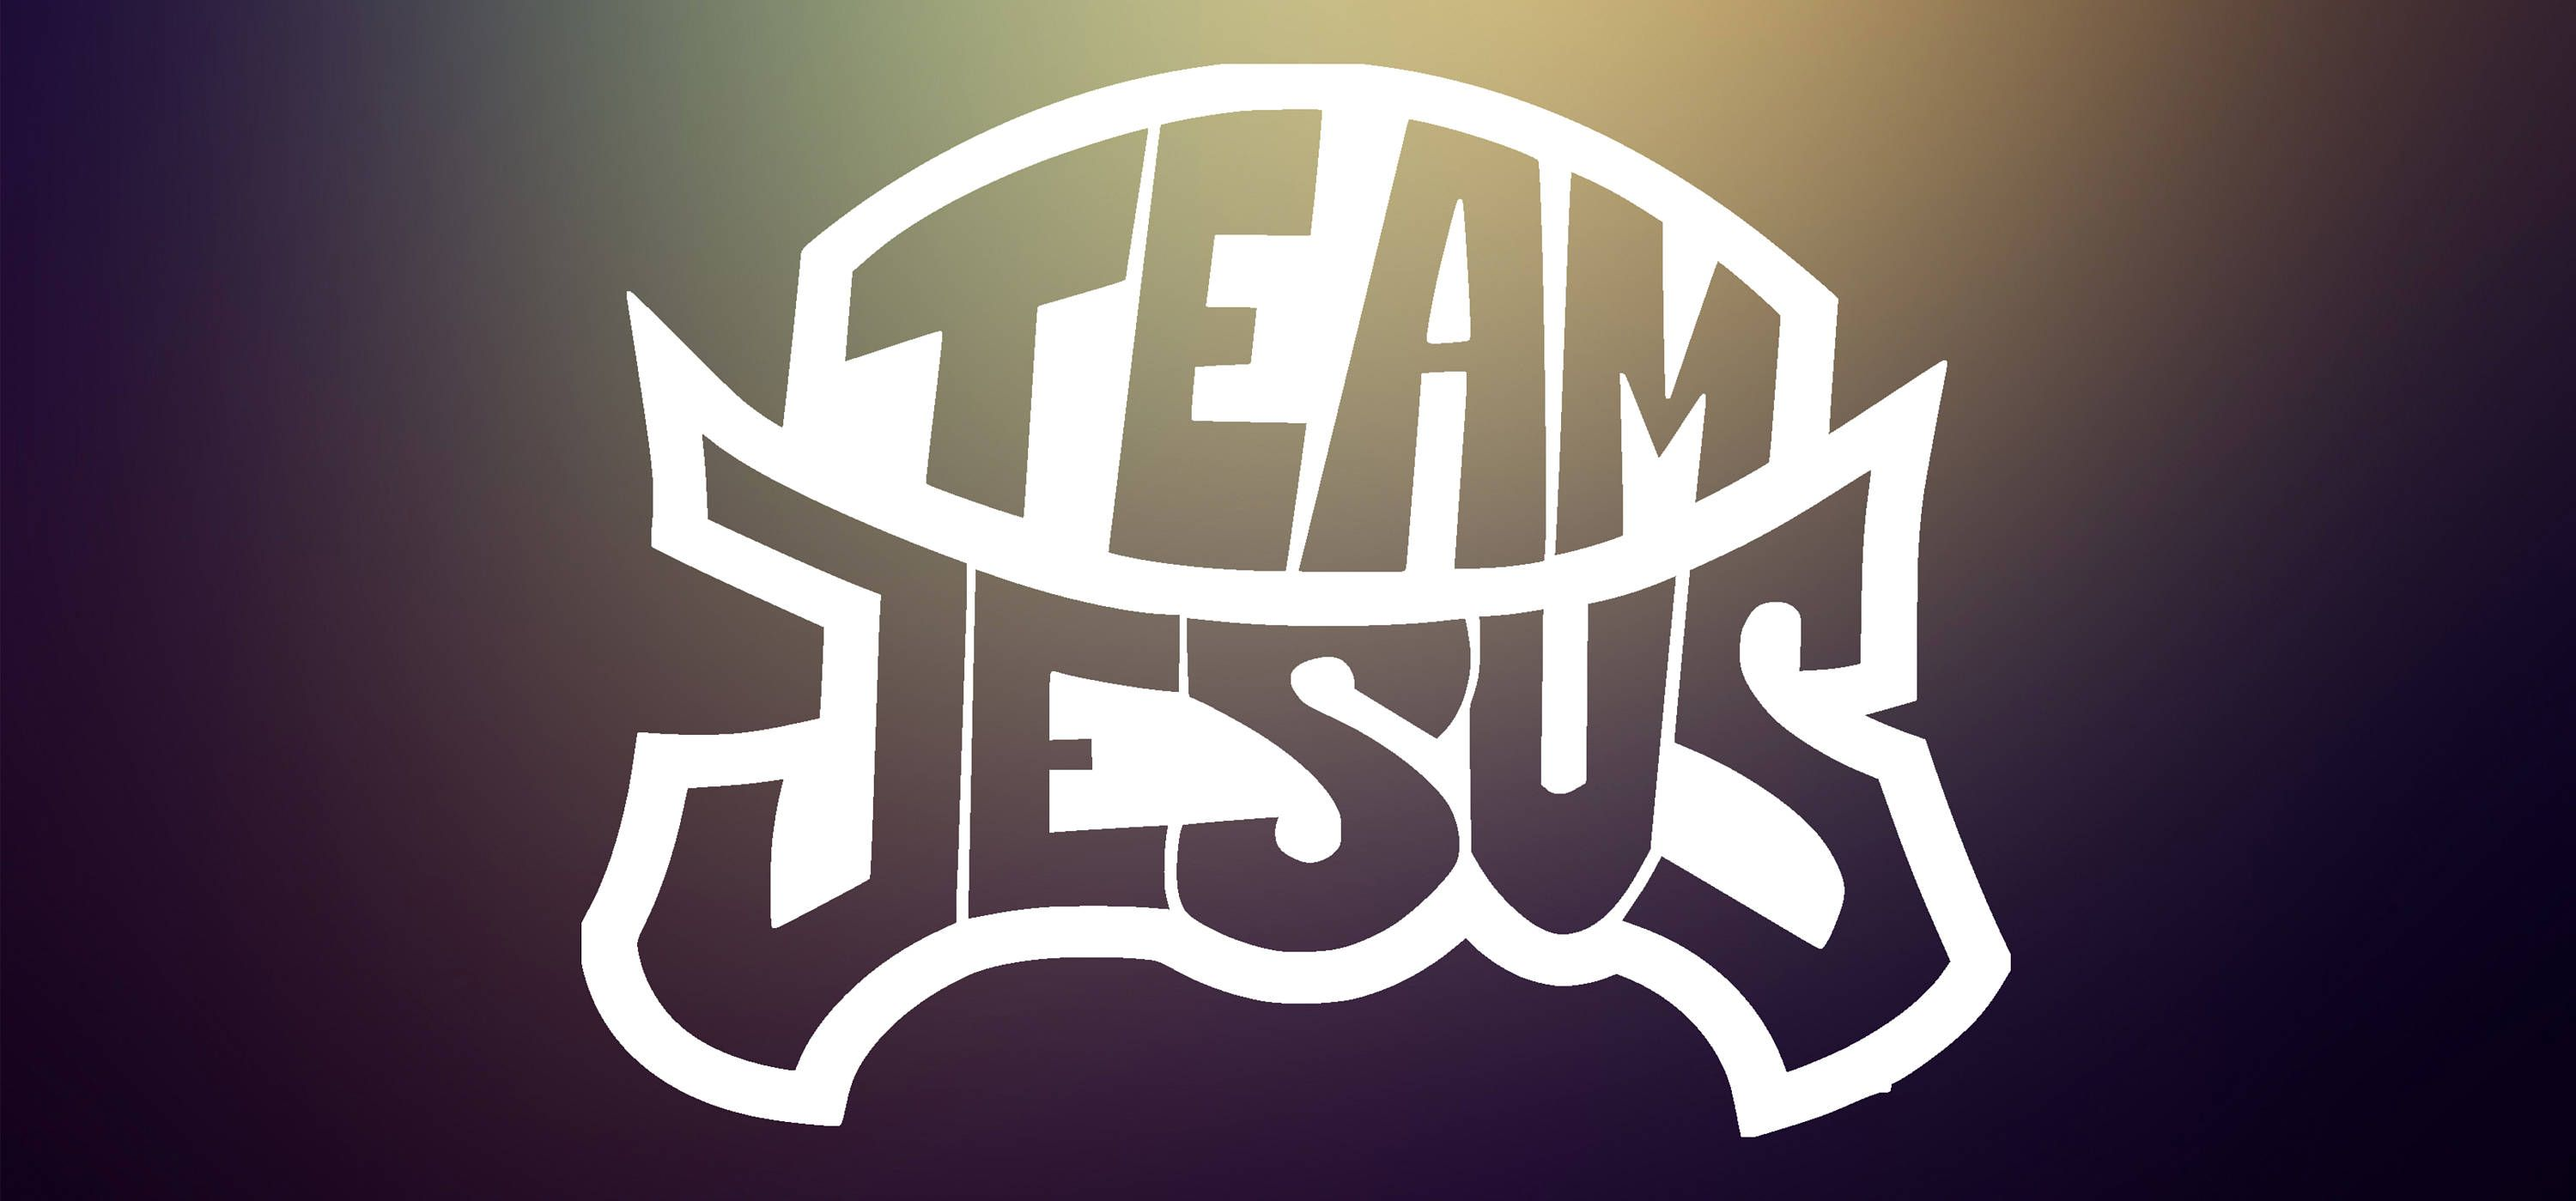 Excited to share the latest addition to my etsy shop team jesus decal http